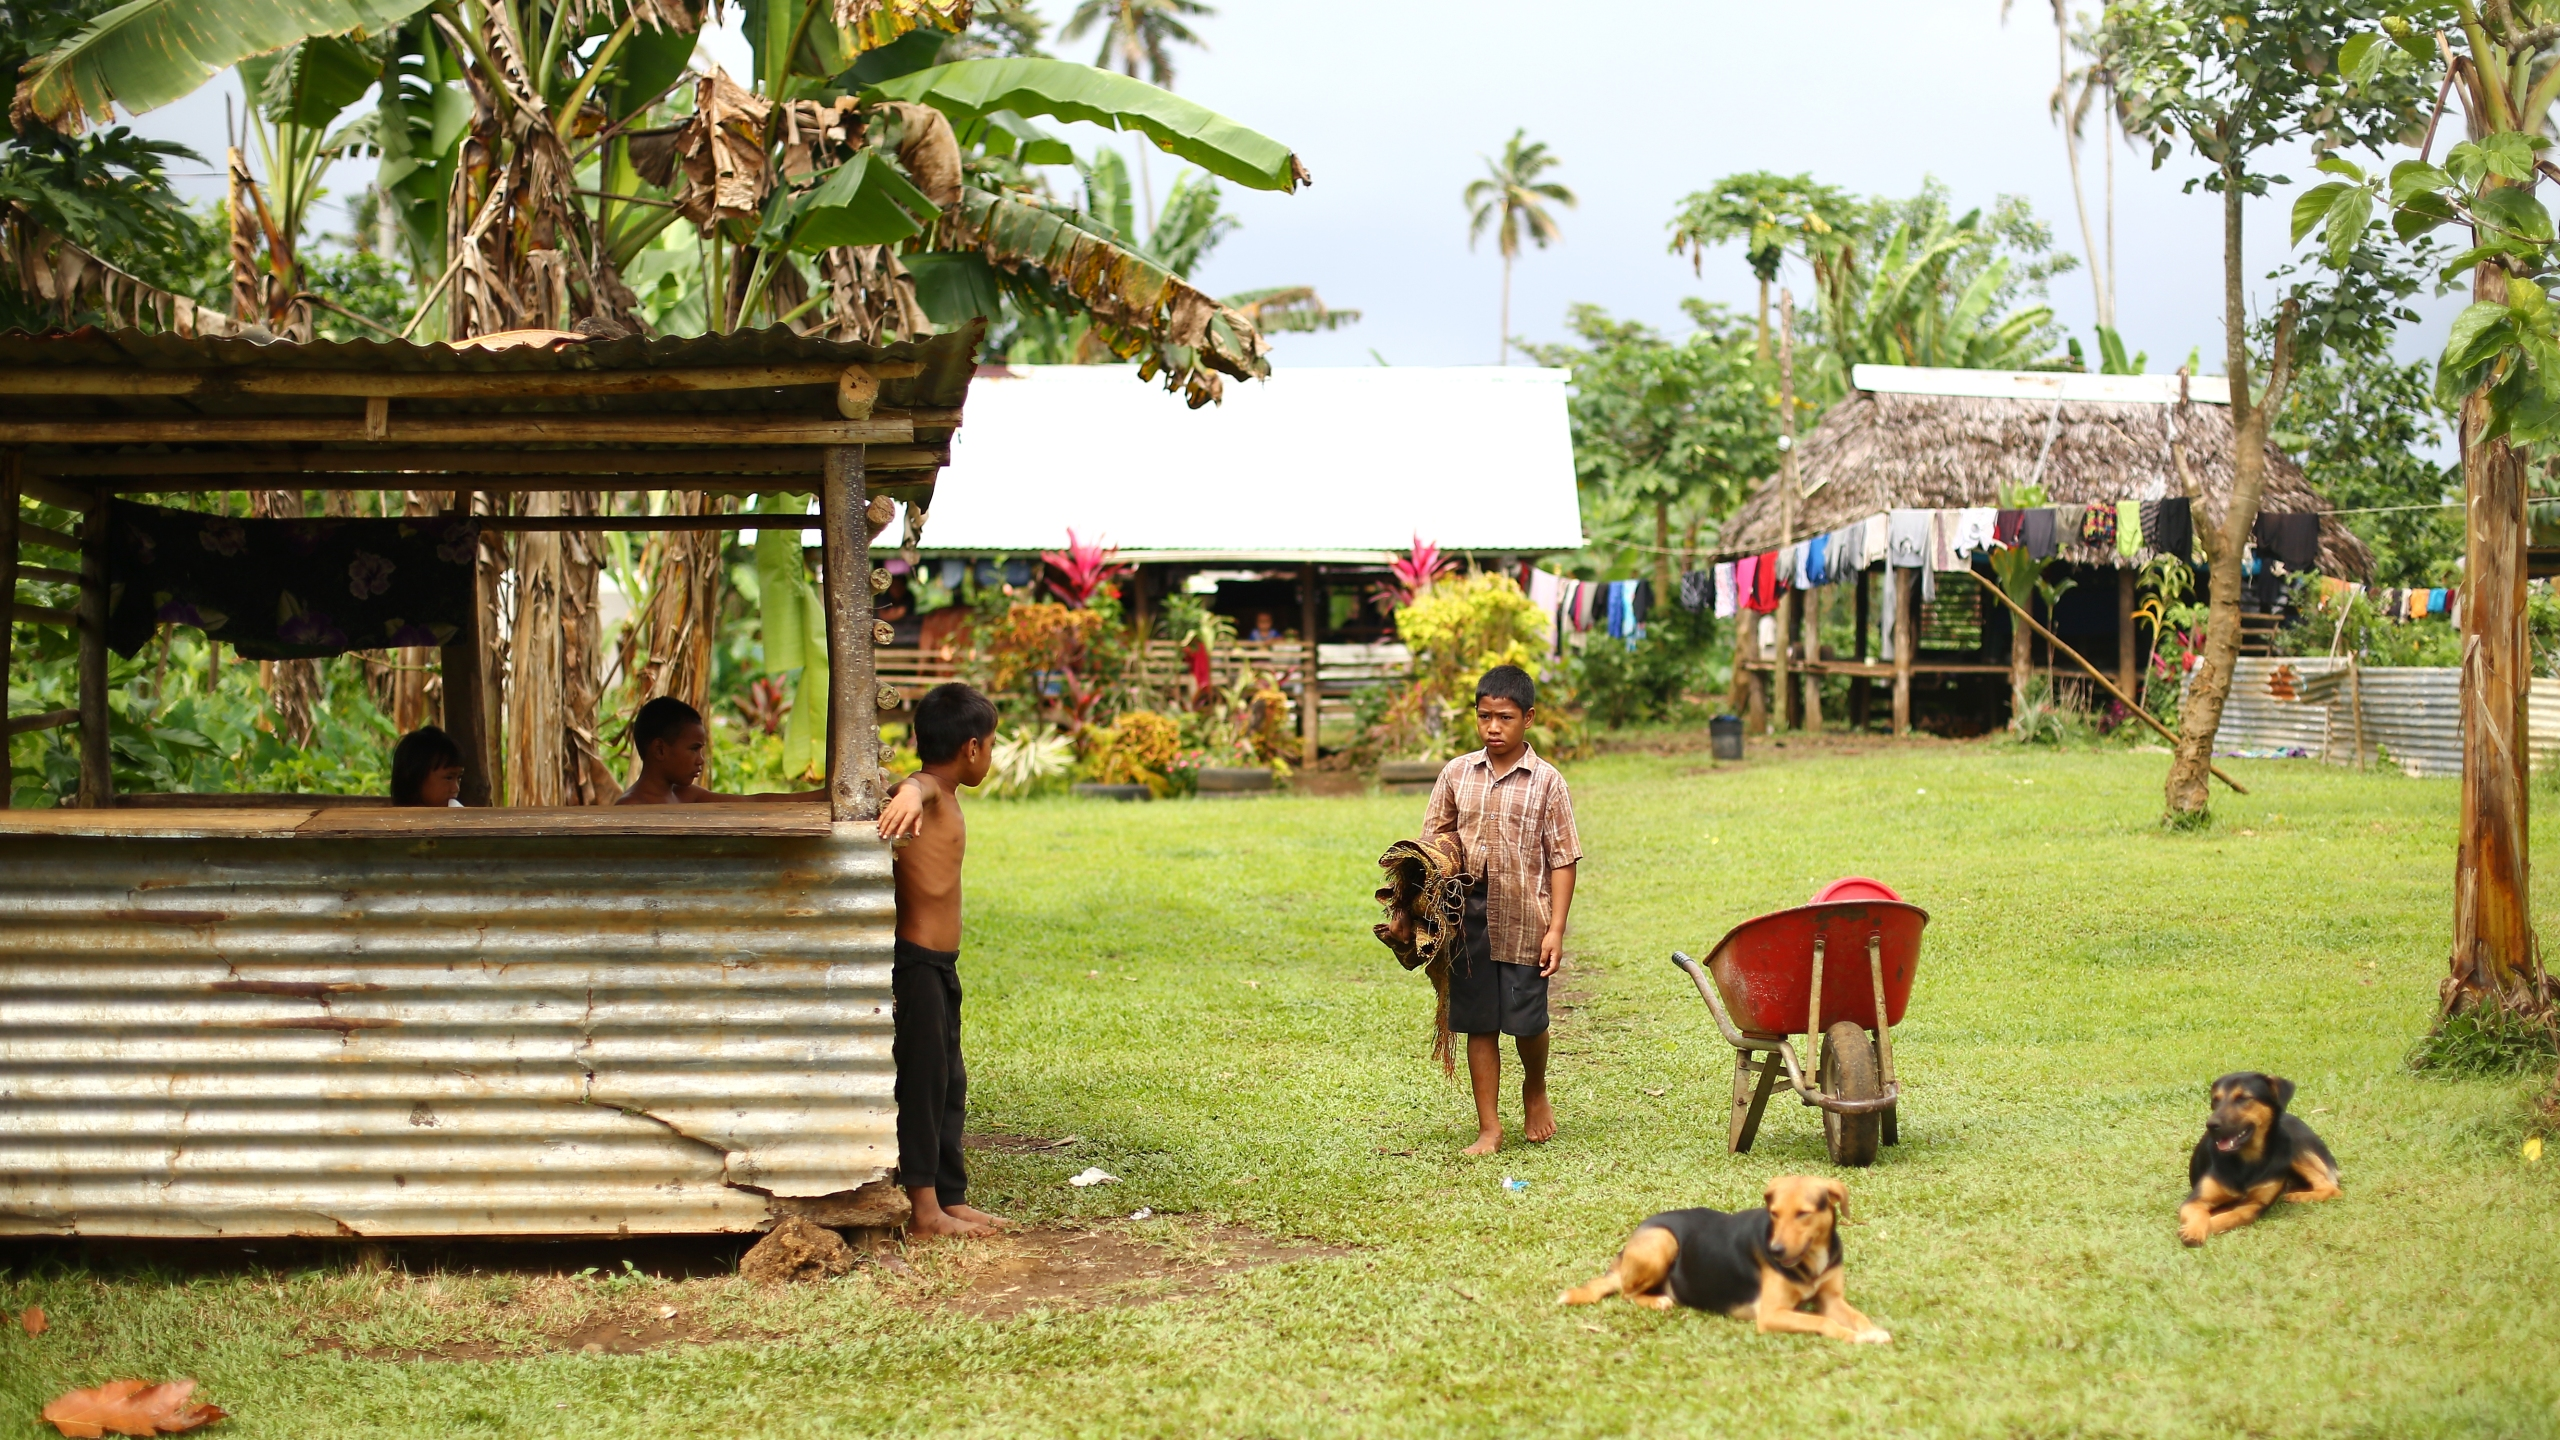 Children pose near their home in Sa'agafou, Samoa is this file photo taken on Sept. 12, 2015. (Credit: Mark Kolbe/Getty Images)